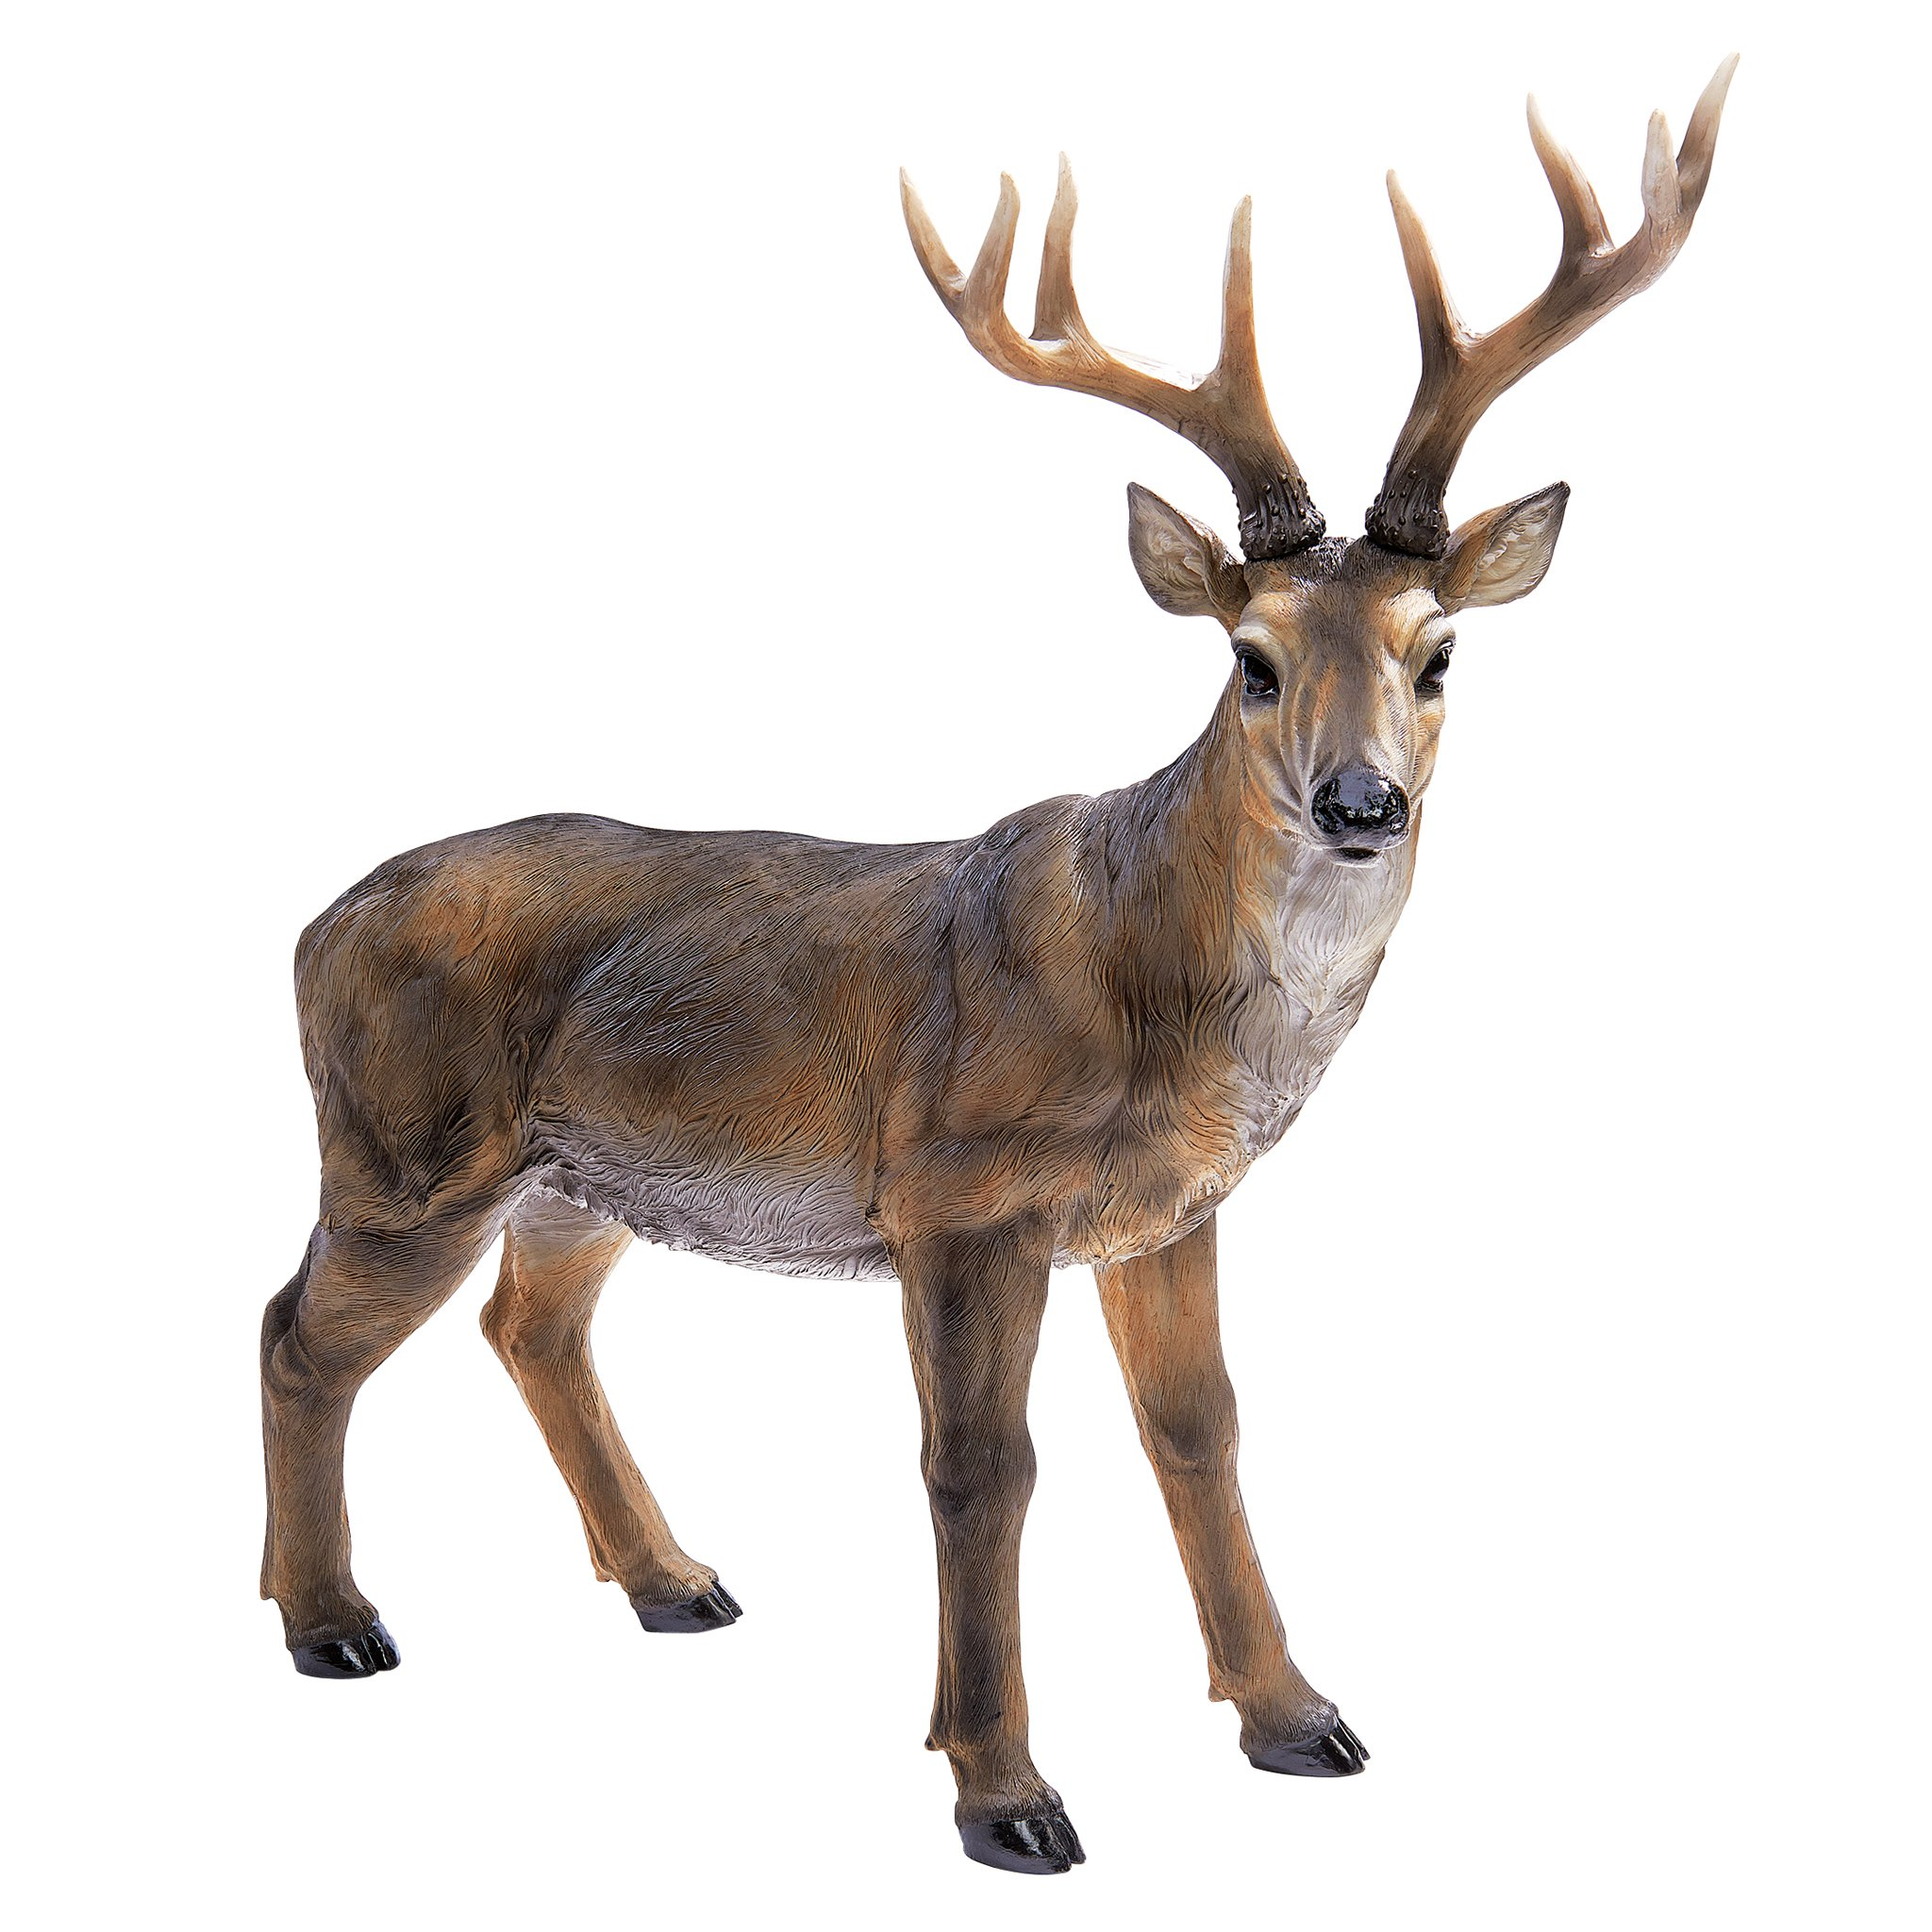 Design Toscano Big Rack Buck Deer Statue by Design Toscano